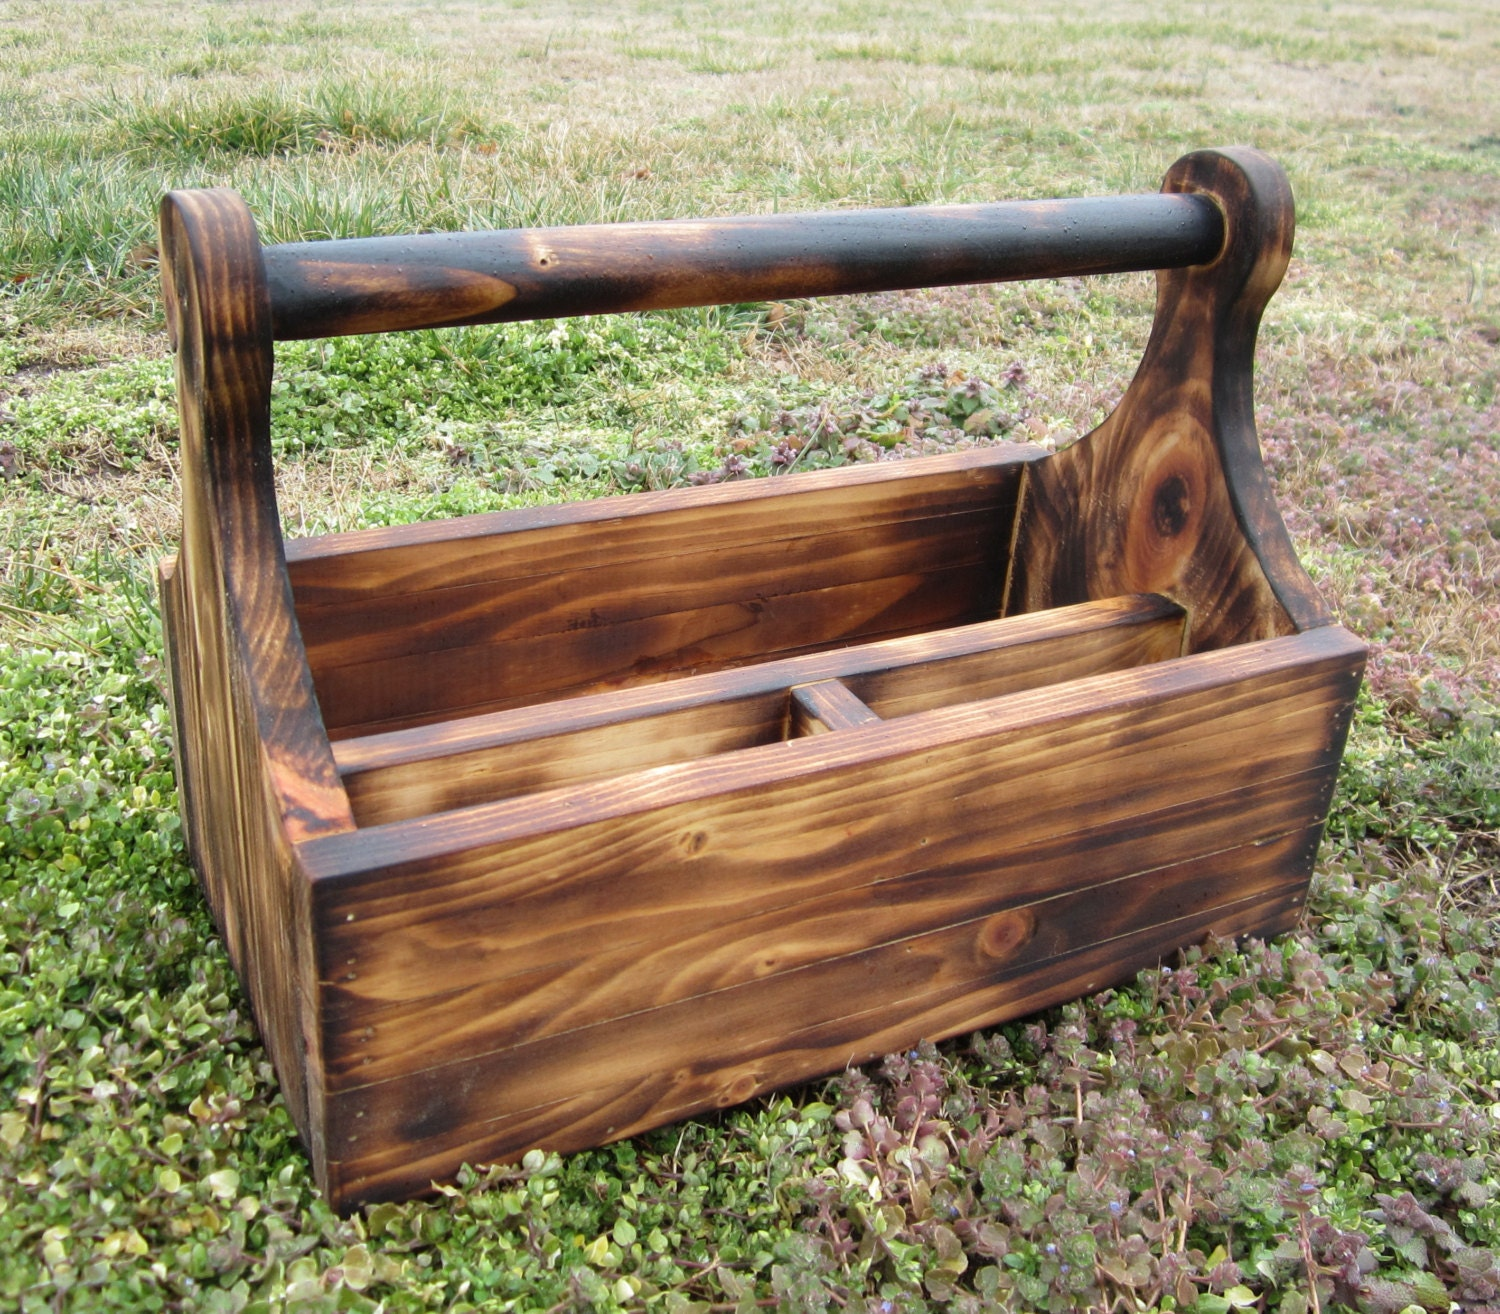 Wood tool box country decor rustic lodge wooden tote for Wooden garden ornaments and accessories